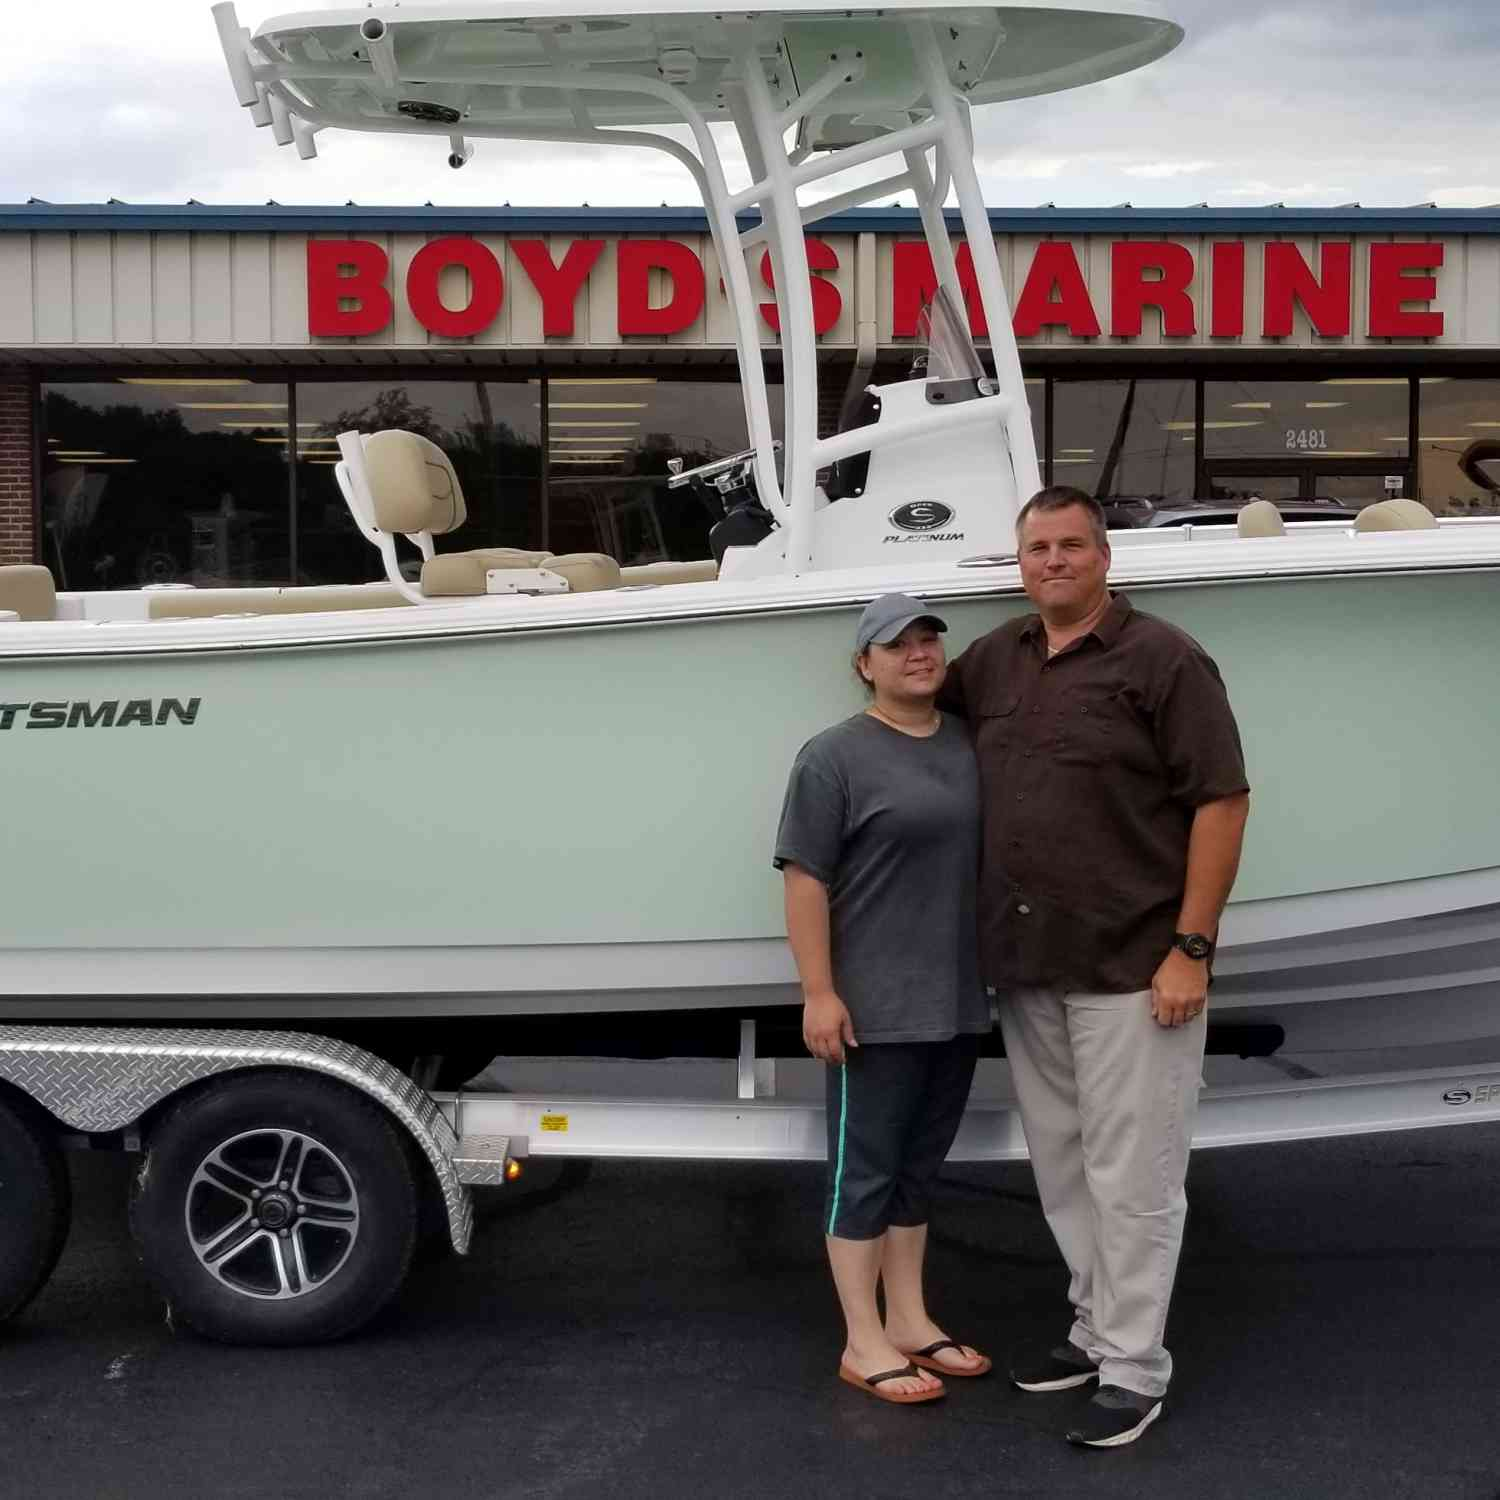 Title: New Family Member - On board their Sportsman Open 232 Center Console - Location: Boyds Marine,  Dothan Alabama. Participating in the Photo Contest #SportsmanJune2018